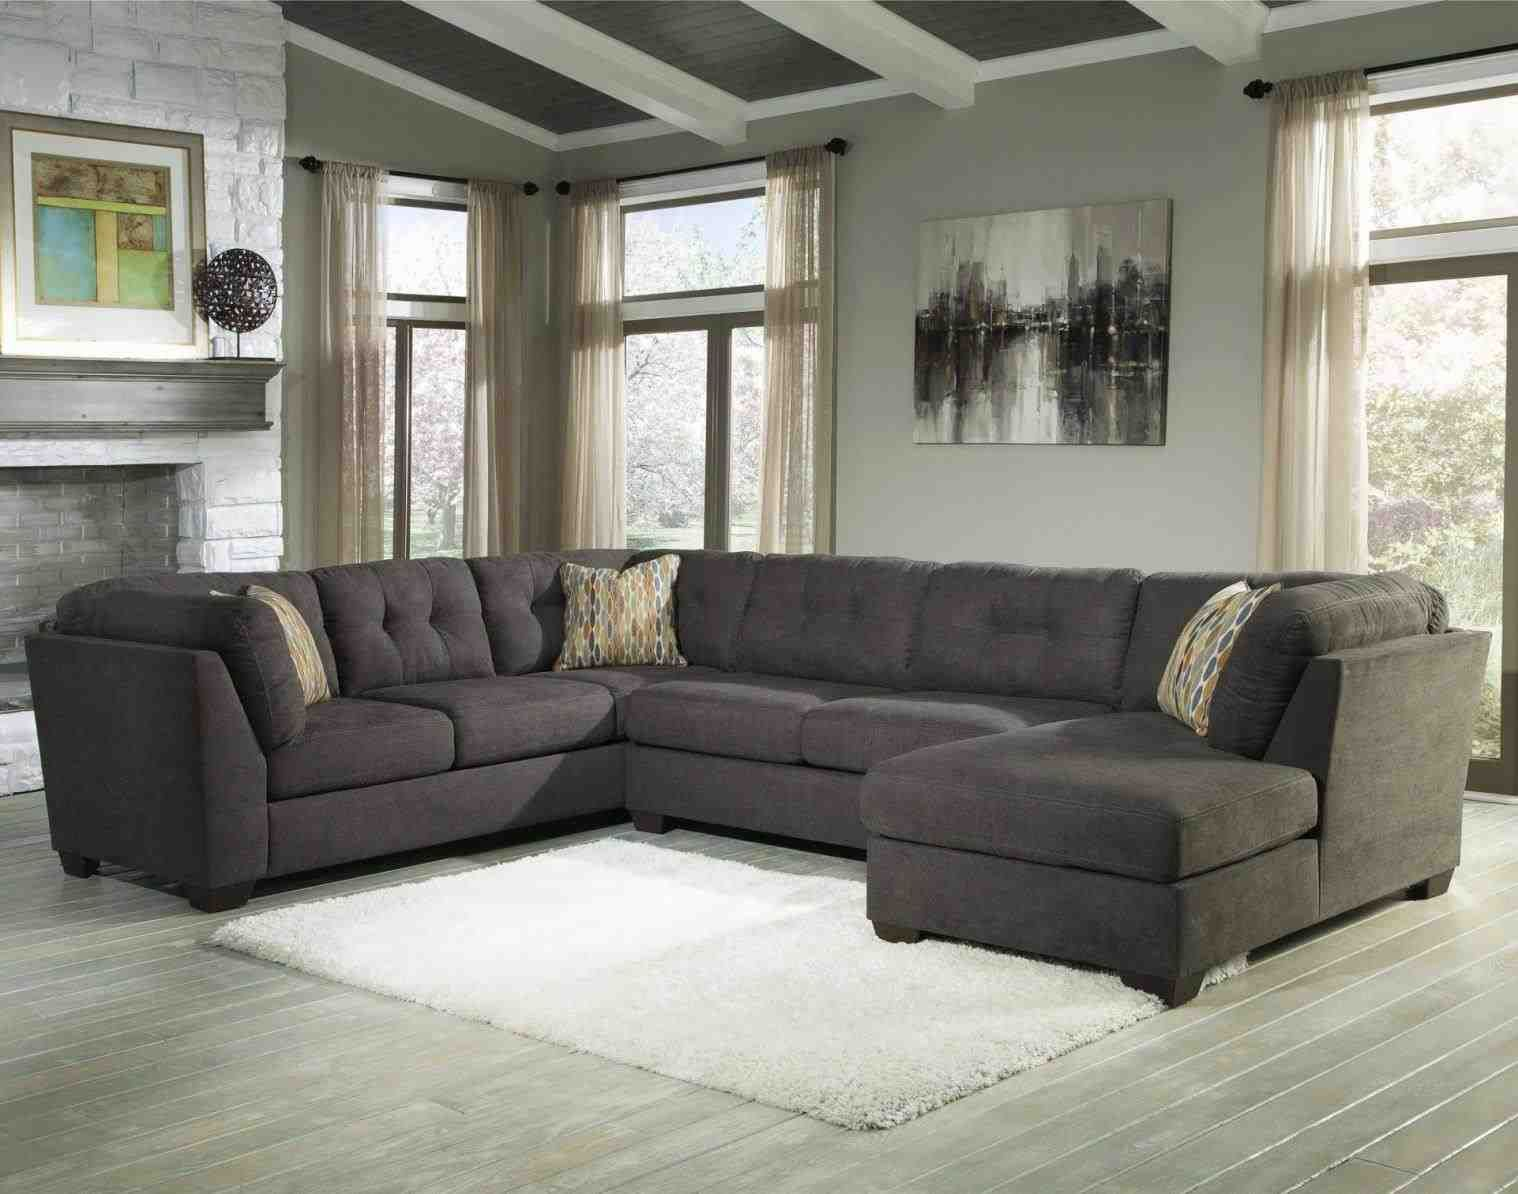 Cheap Living Room Furniture Sectionals Sectional Sofas Living Room Sectional Sofa With Chaise Comfortable Sectional Sofa